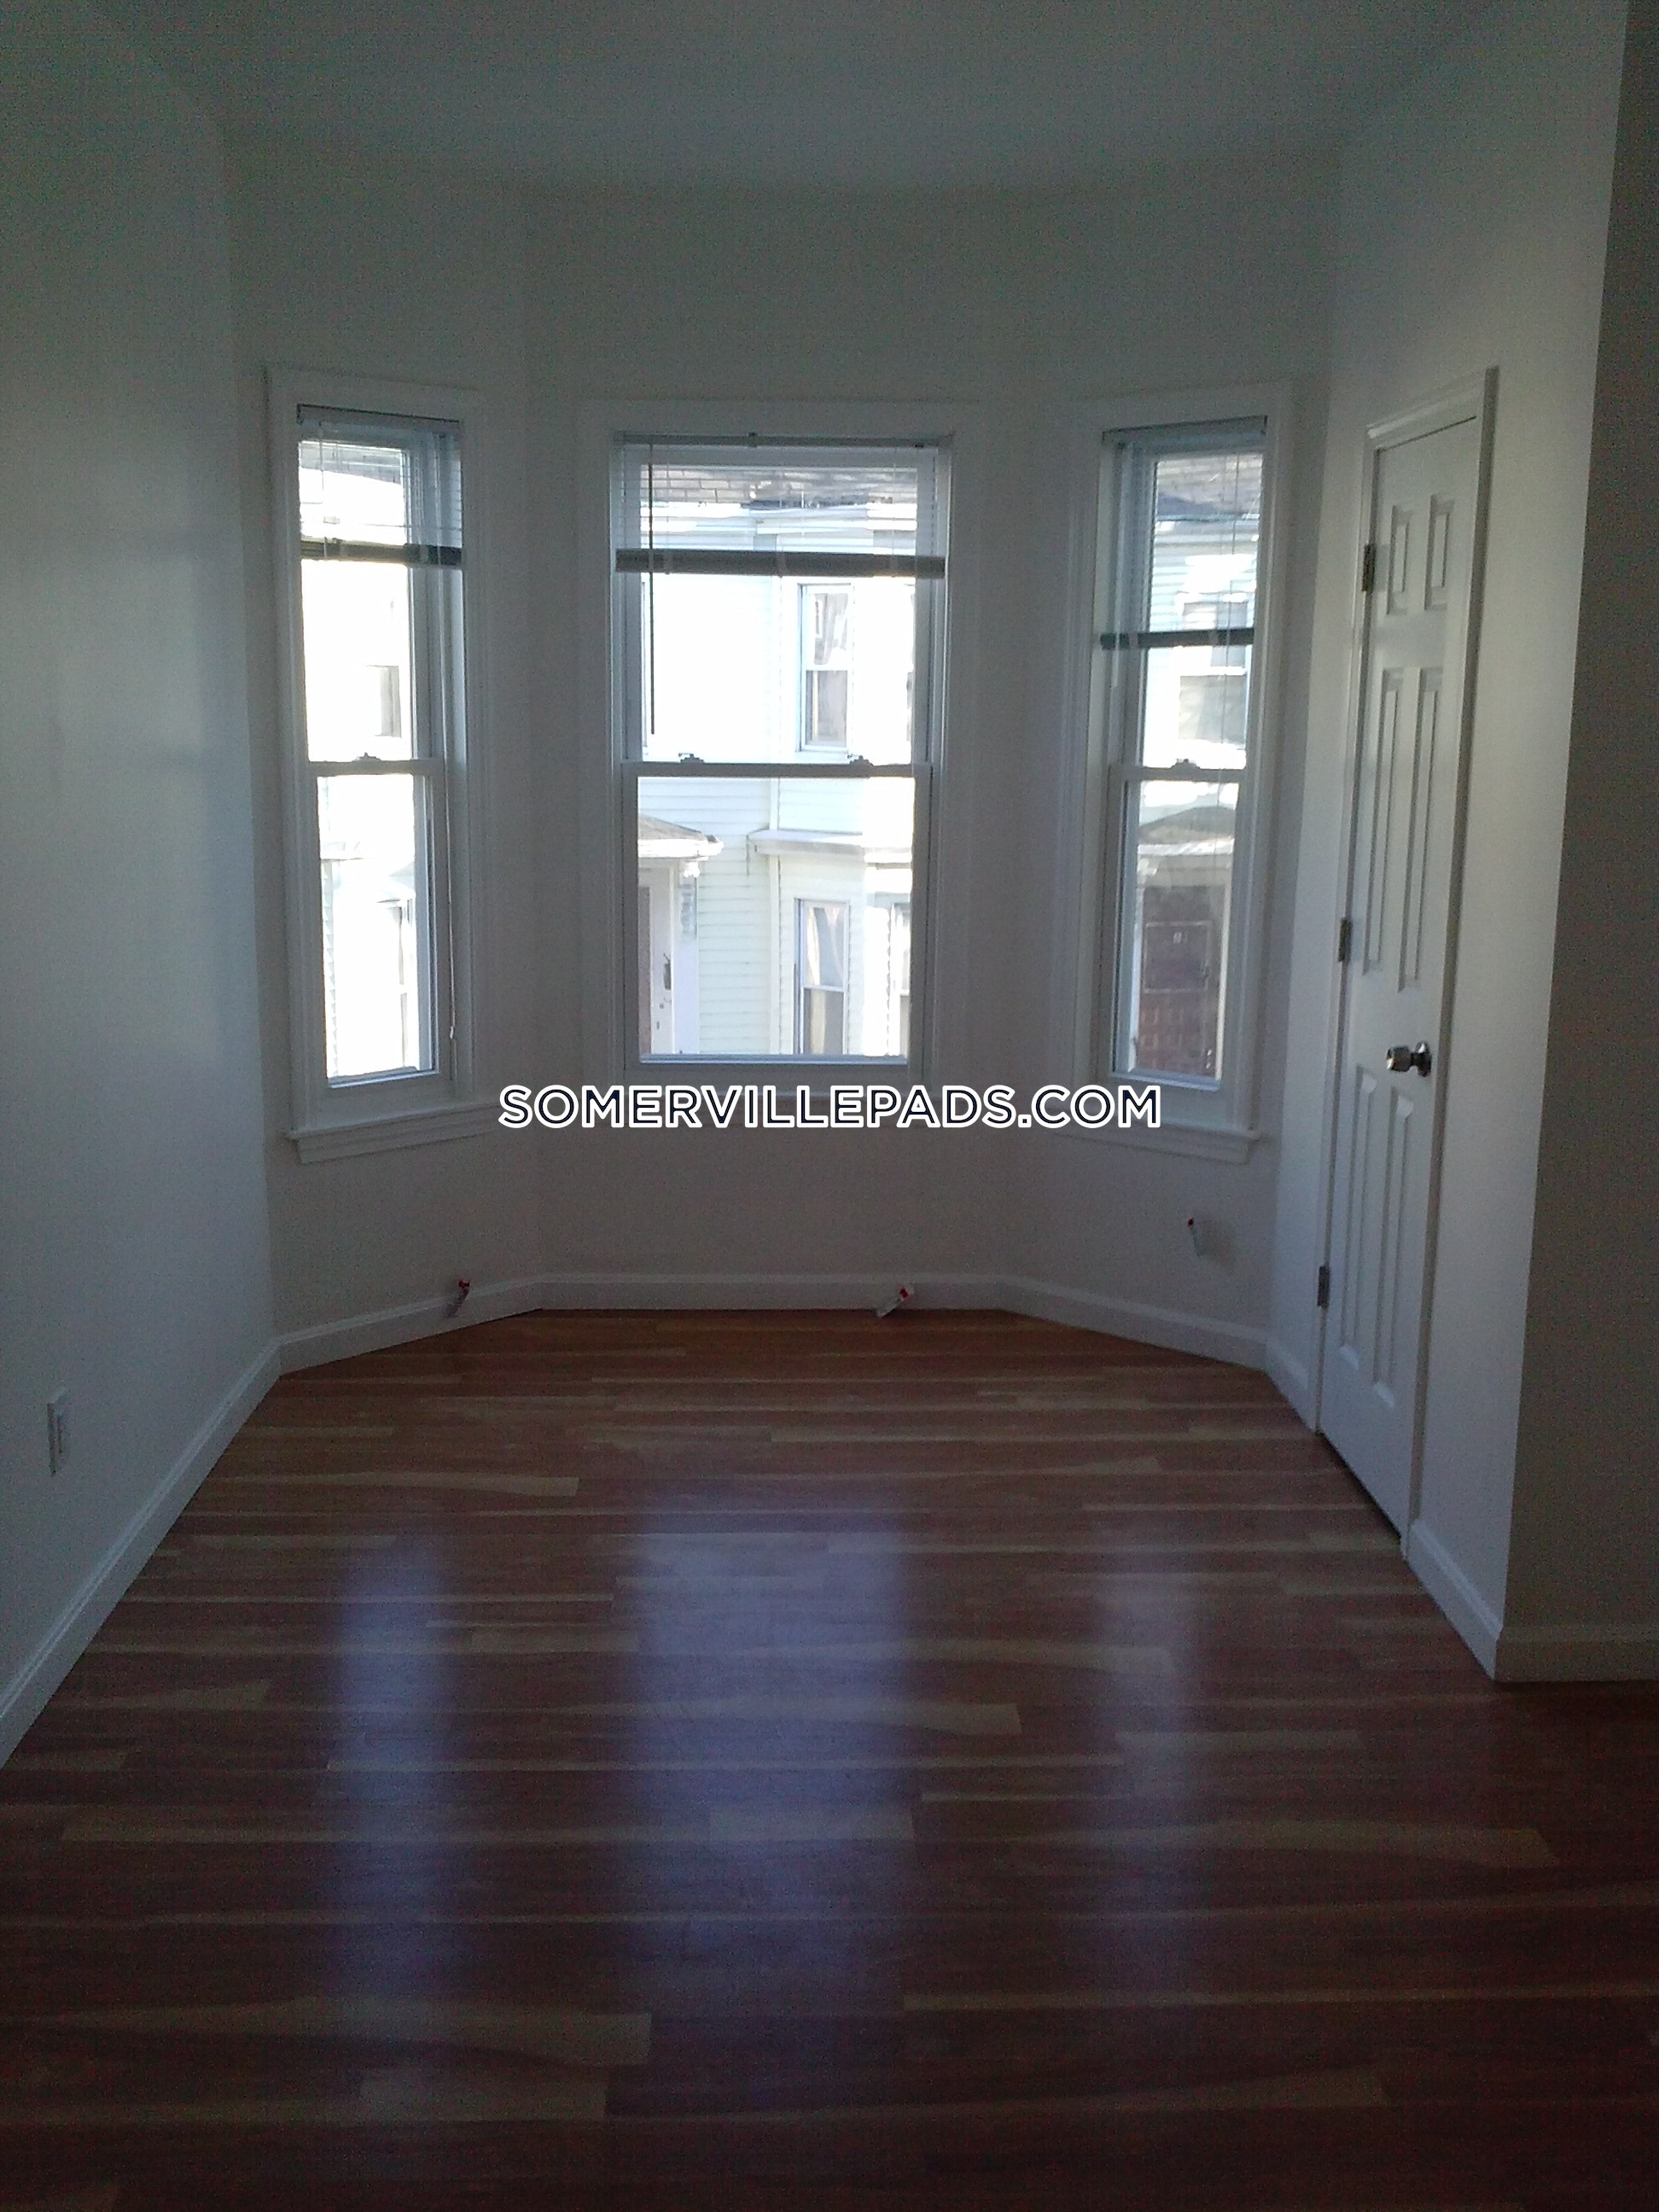 3-beds-1-bath-somerville-east-somerville-2300-456910